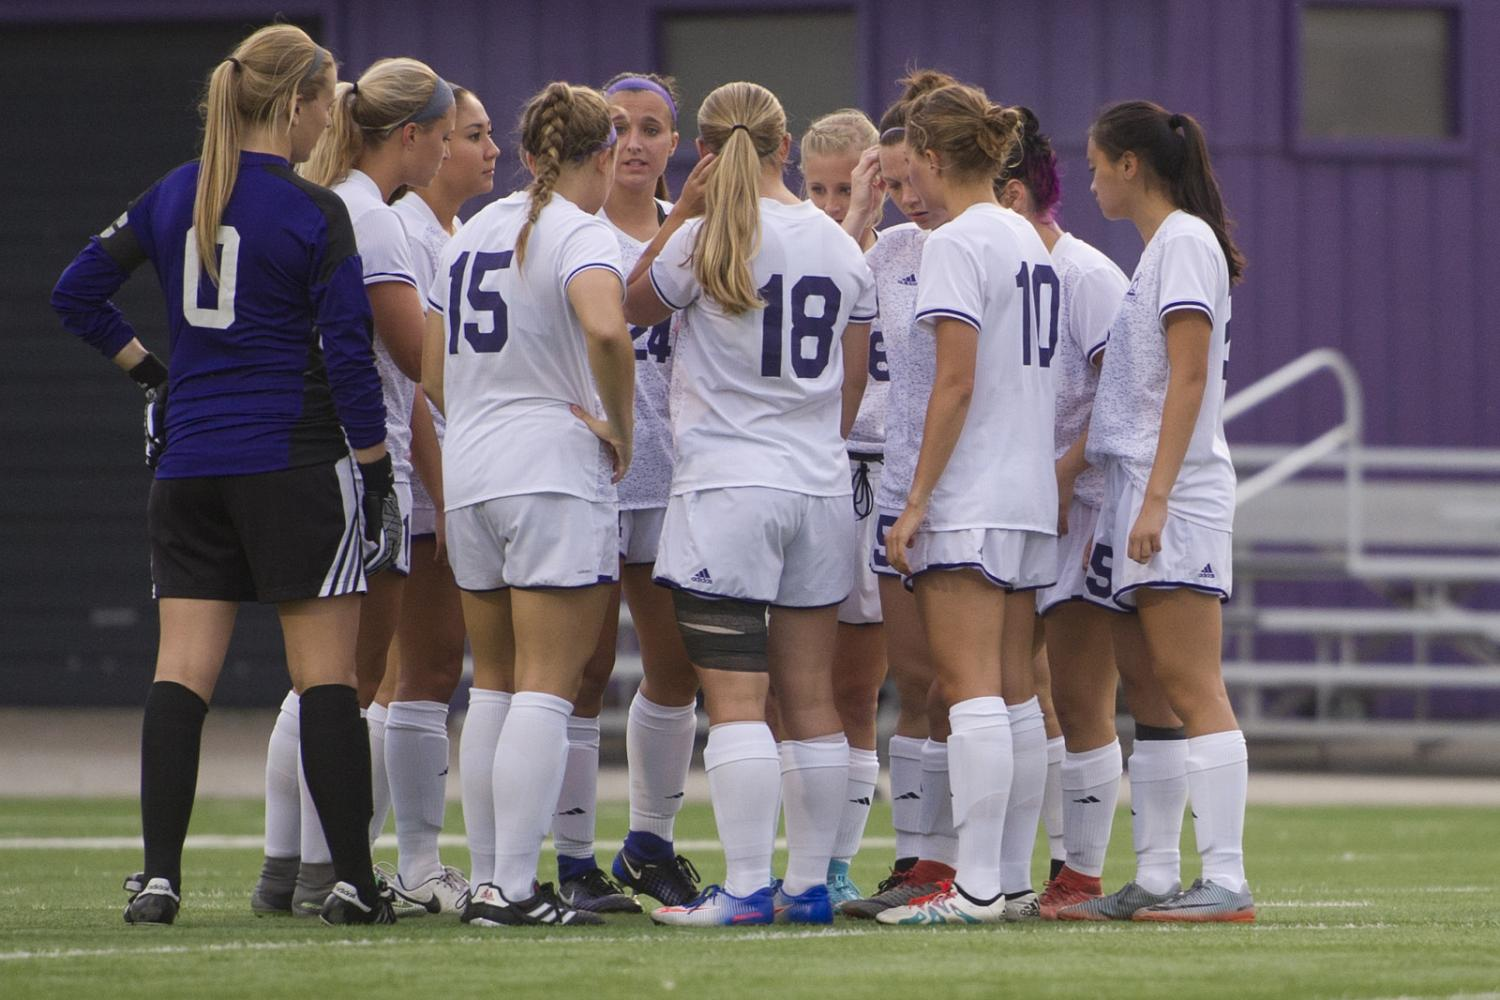 Members of the Winona State soccer team gather for a group huddle at a game against Upper Iowa on Thursday, Sept. 9. The team played two games this week, winning 4-0 against Wayne State College on Friday.